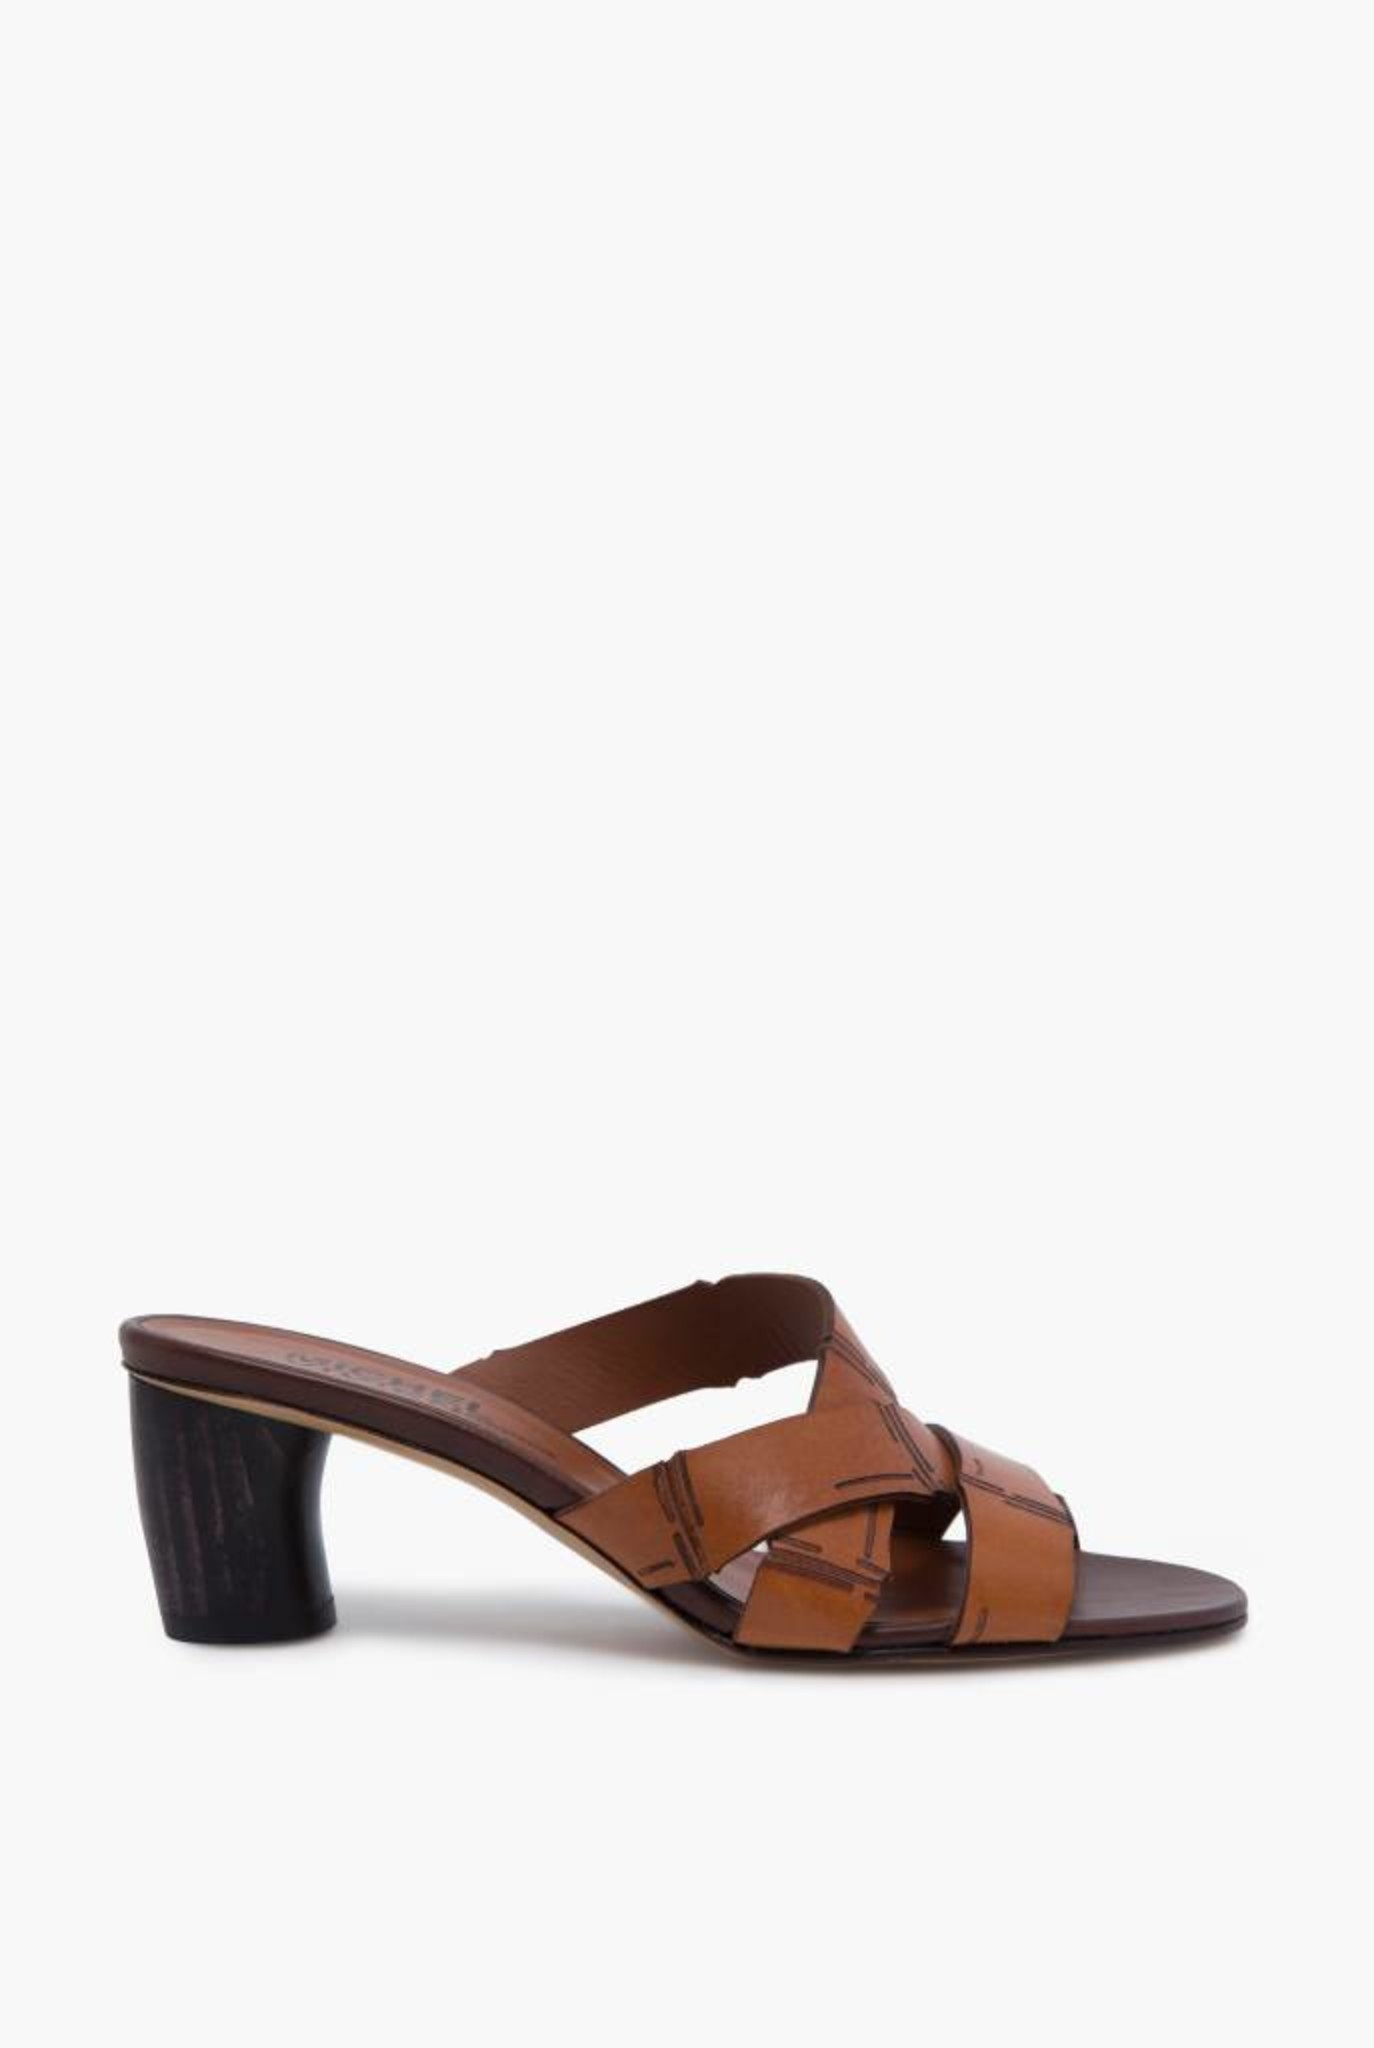 Sikha slipper brown